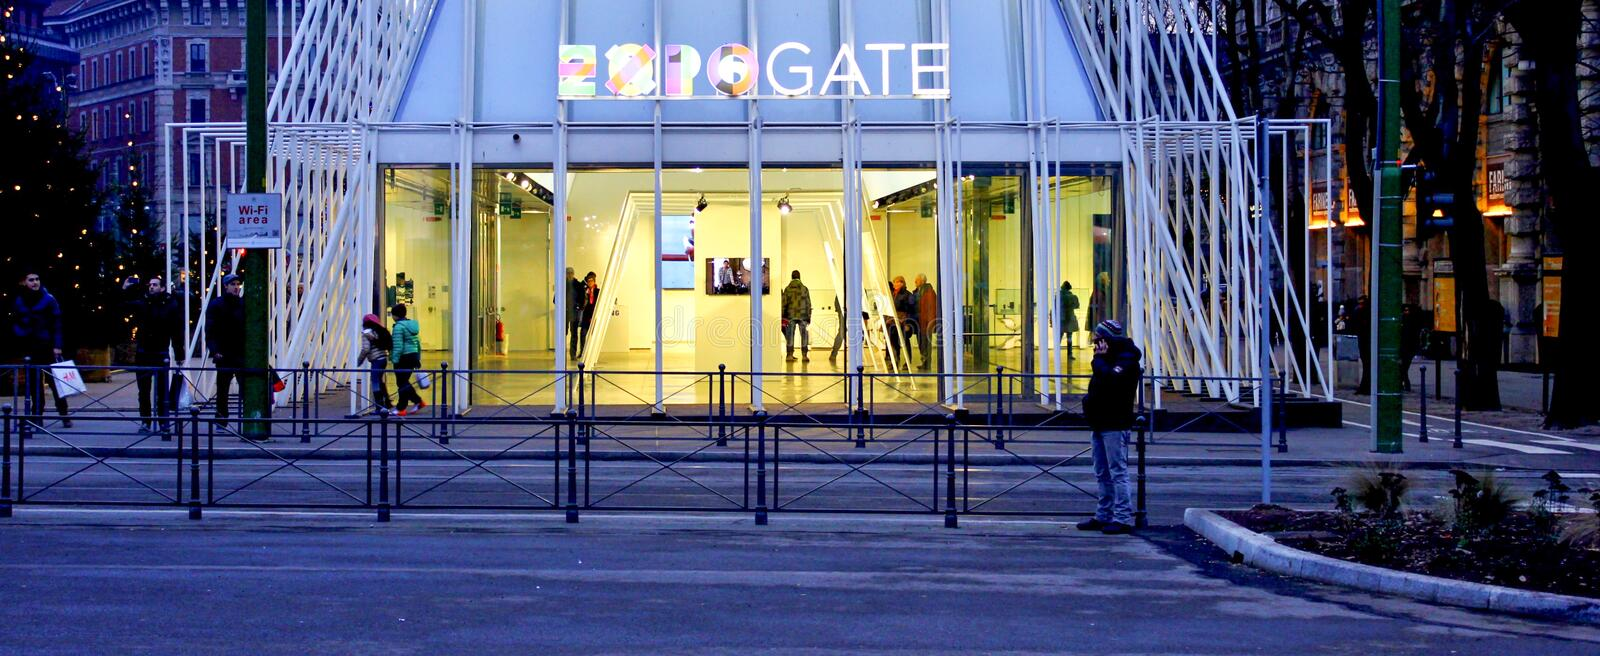 Expo gate in Milano 2015, temporary structure royalty free stock photography